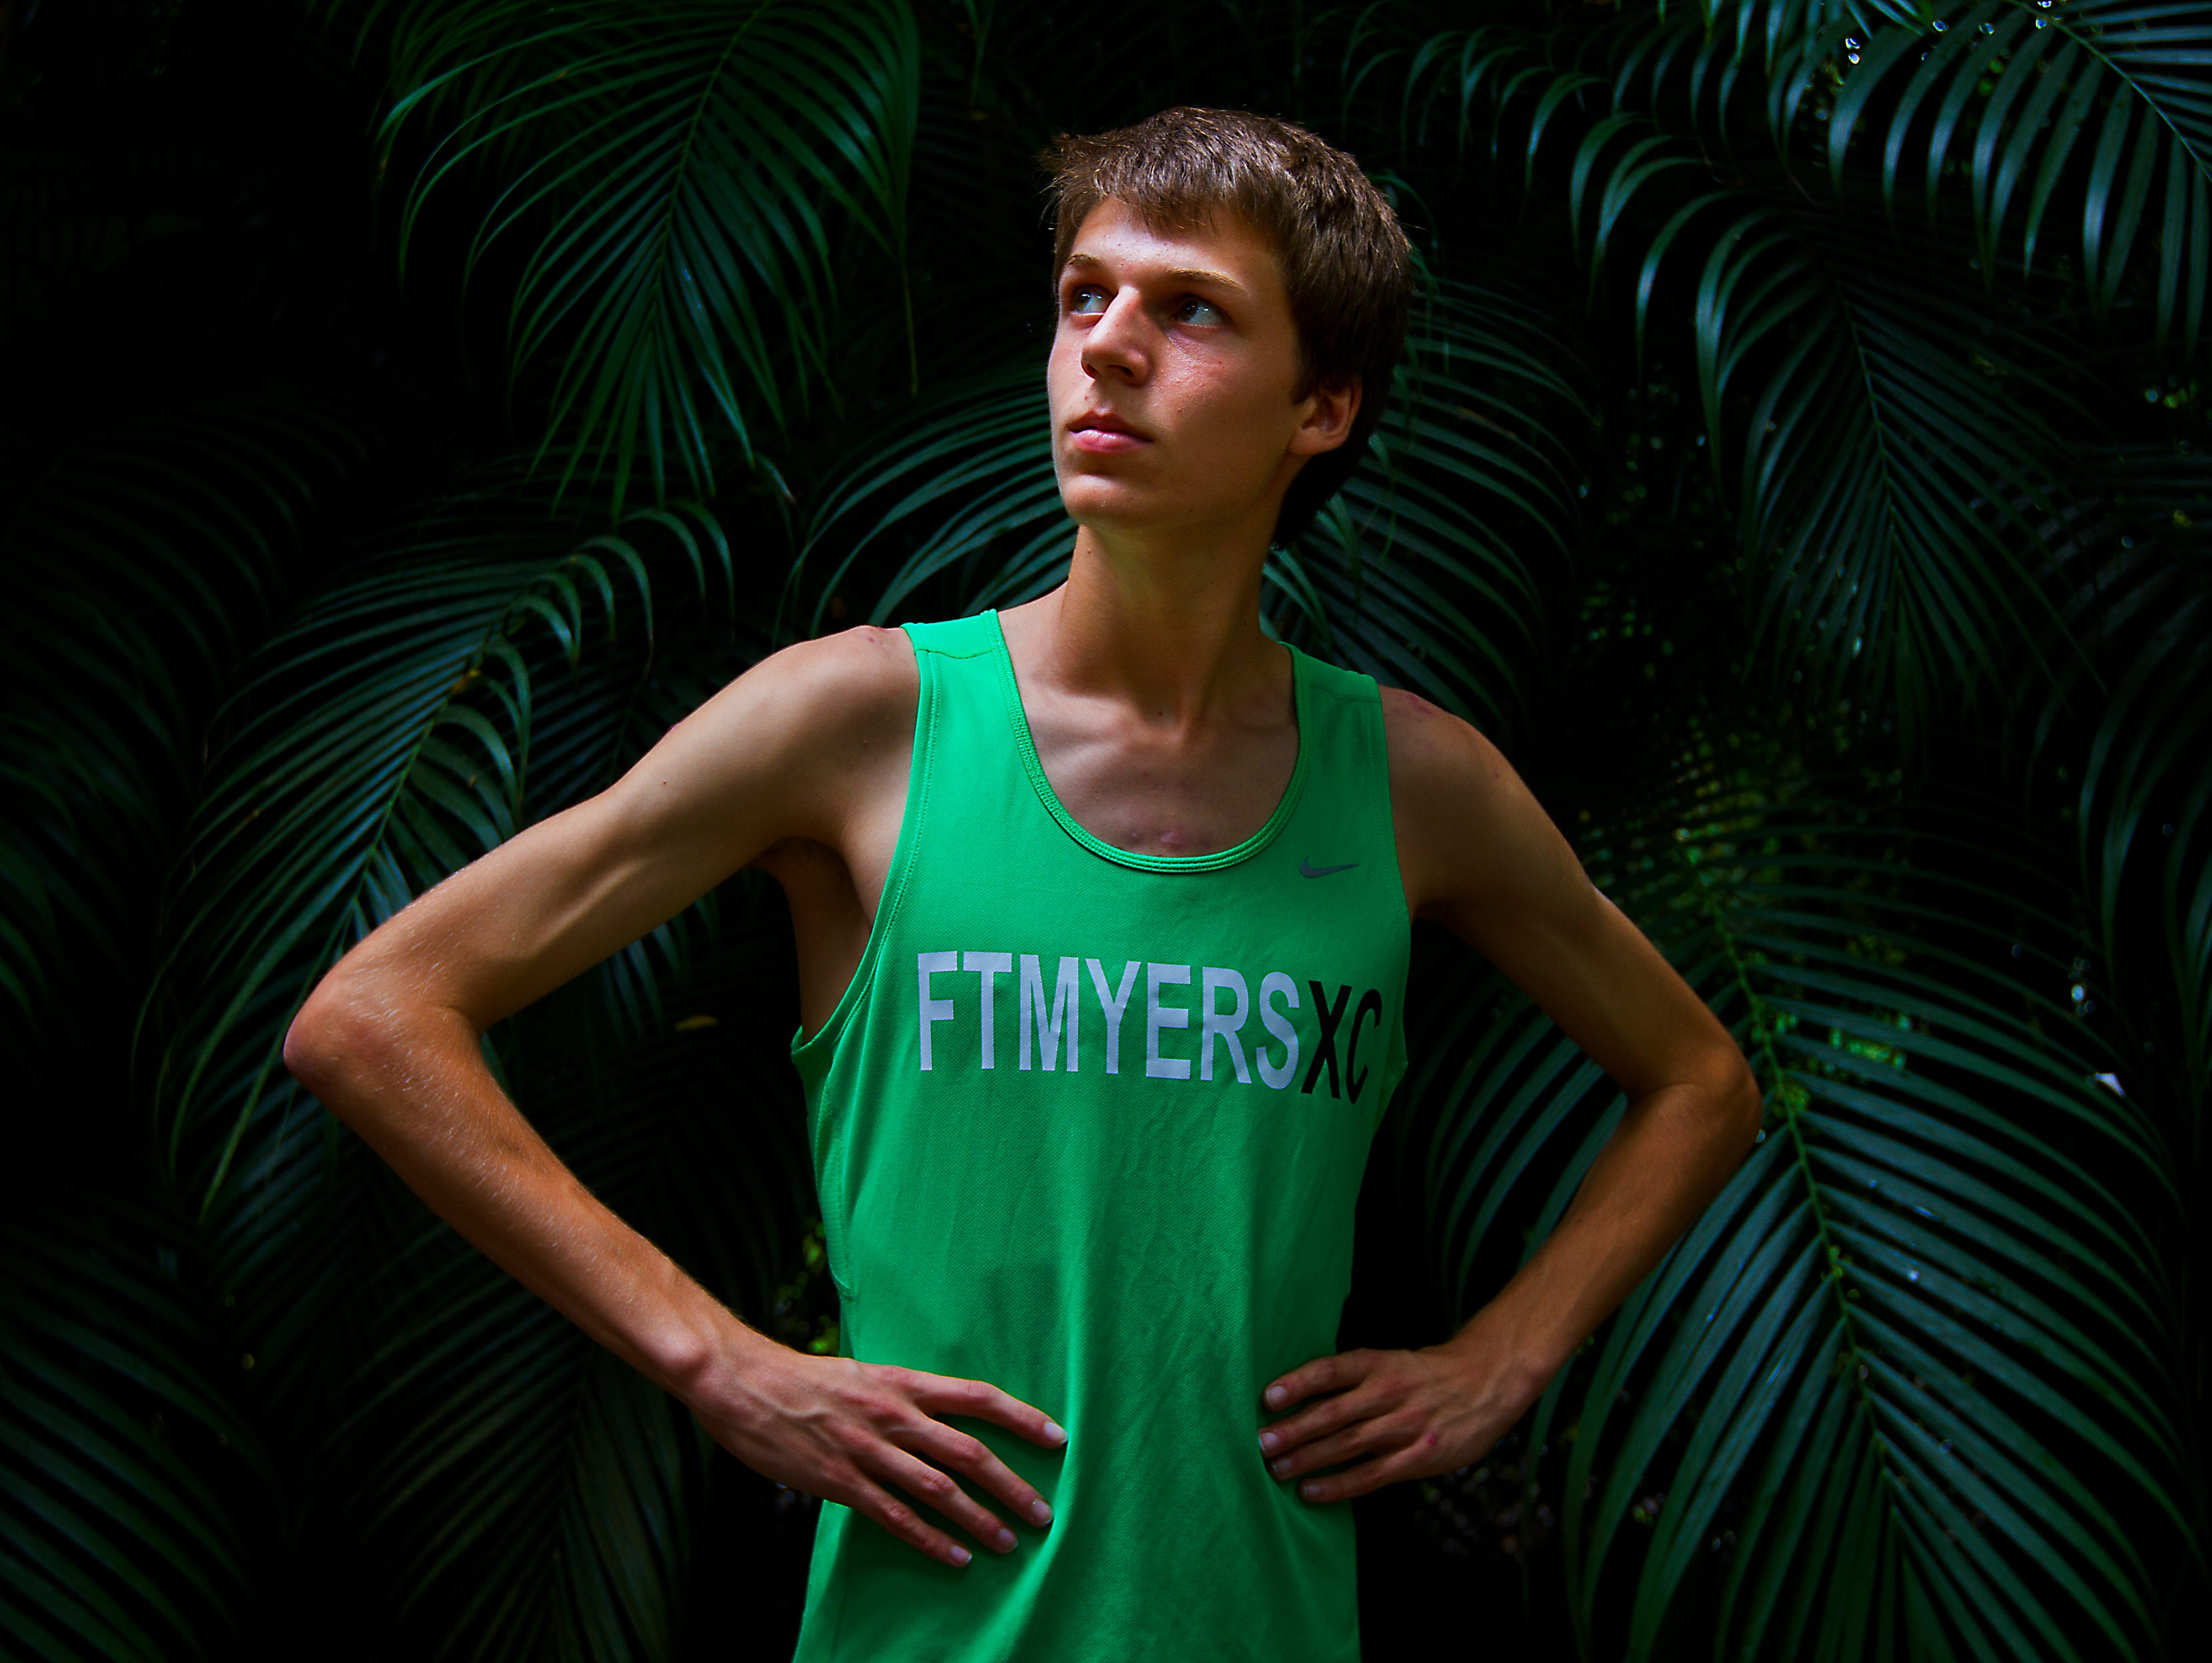 Fort Myers High School junior Josh Kennedy, a cross country athlete, has been a runner since the 4th grade.